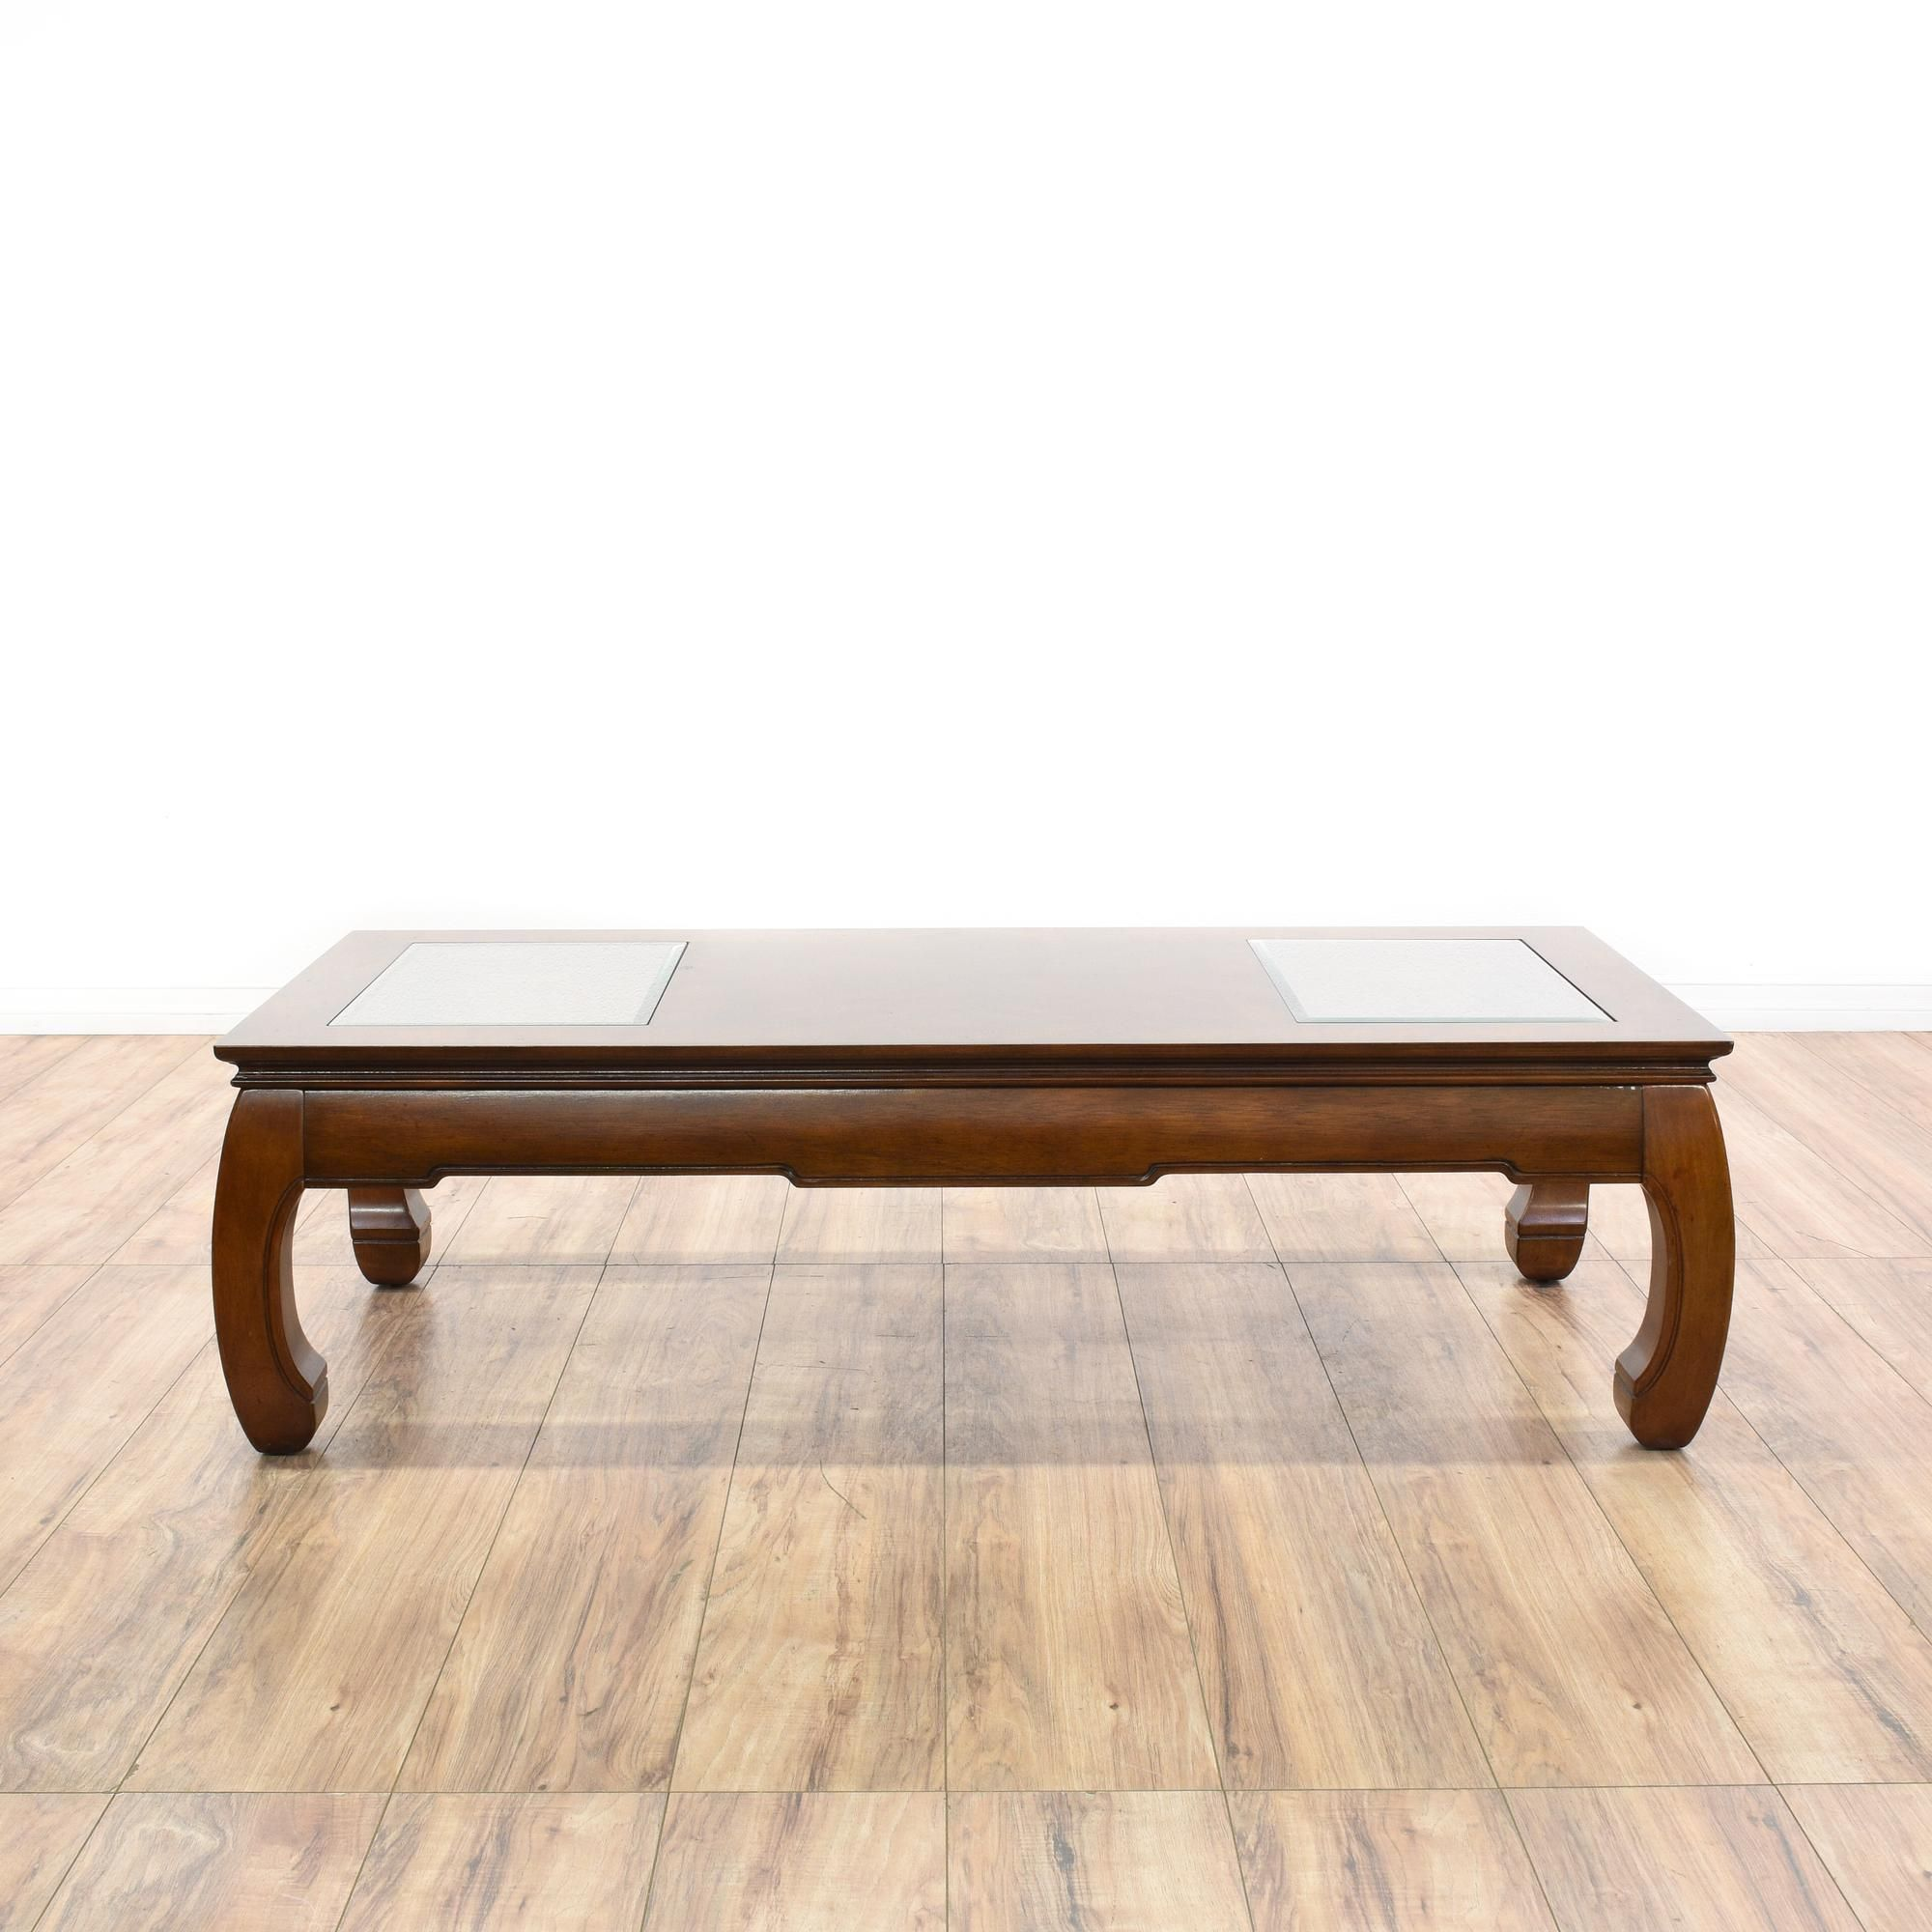 Couchtisch Asia Style This Coffee Table Is Featured In A Solid Wood With A Glossy